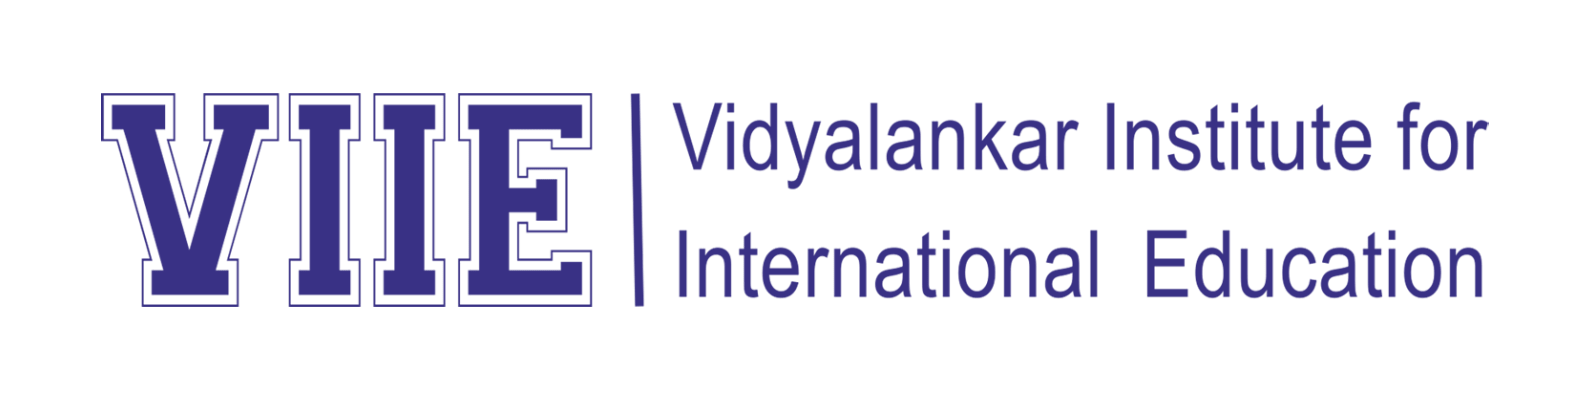 Vidyalankar Institute of International Education